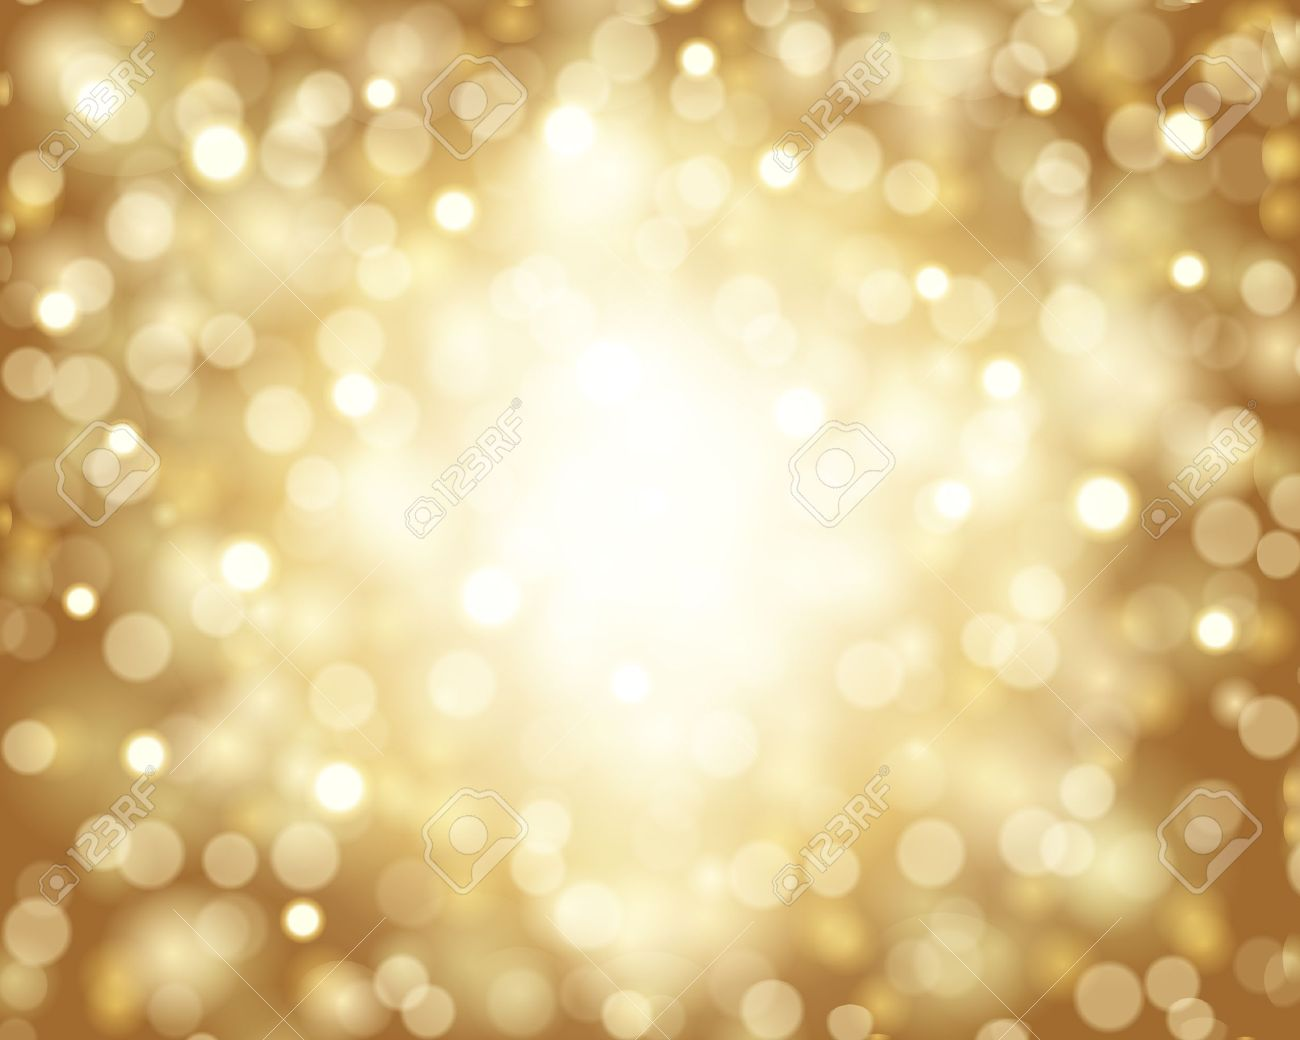 Gold glitter bright vector transparent background golden sparkles - Sparkle Background Bokeh Card Vector Background